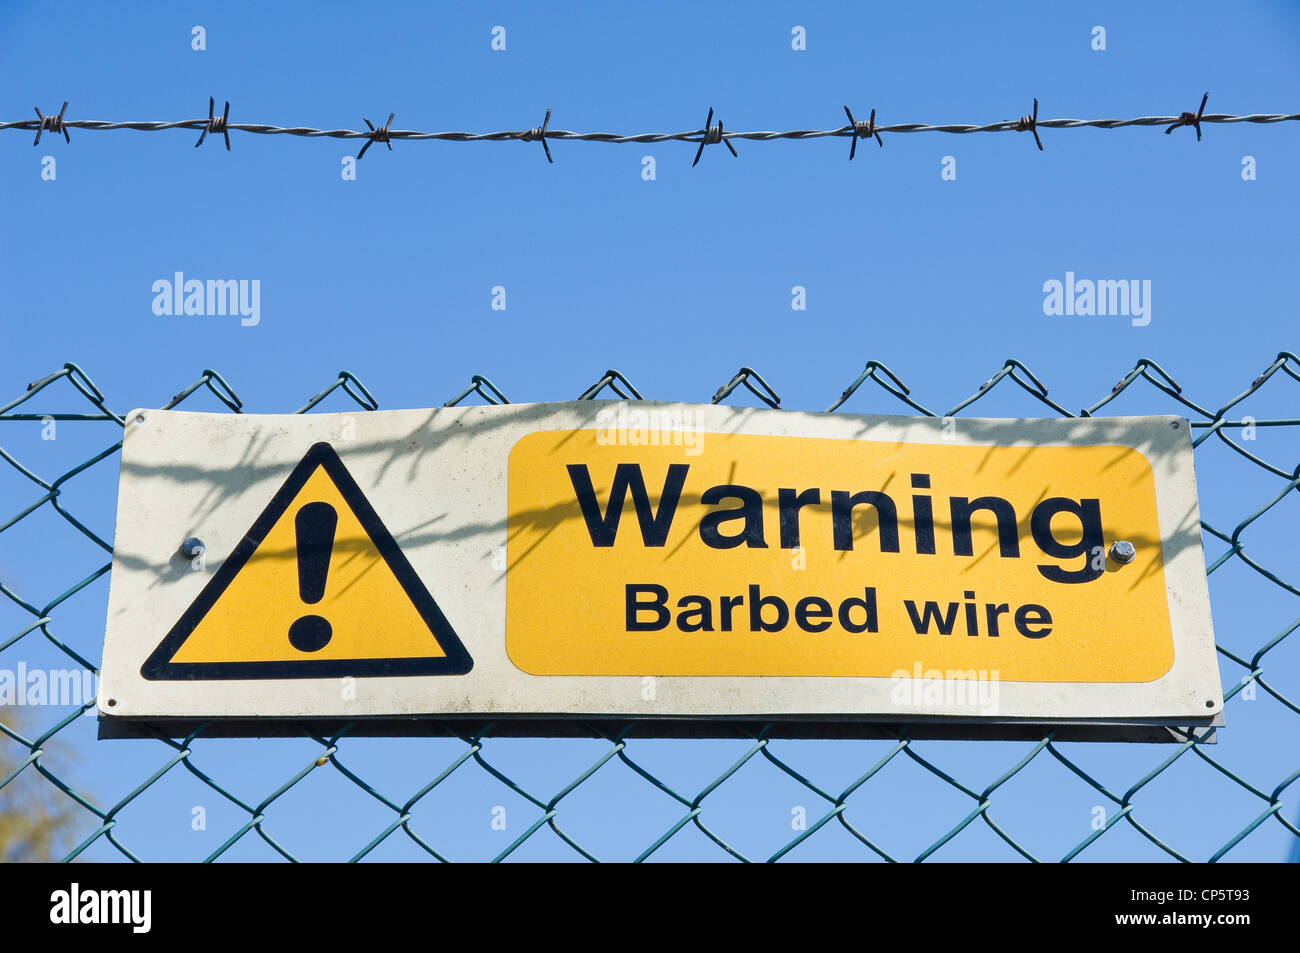 Warning sign on a barbed wire fence - Stock Image